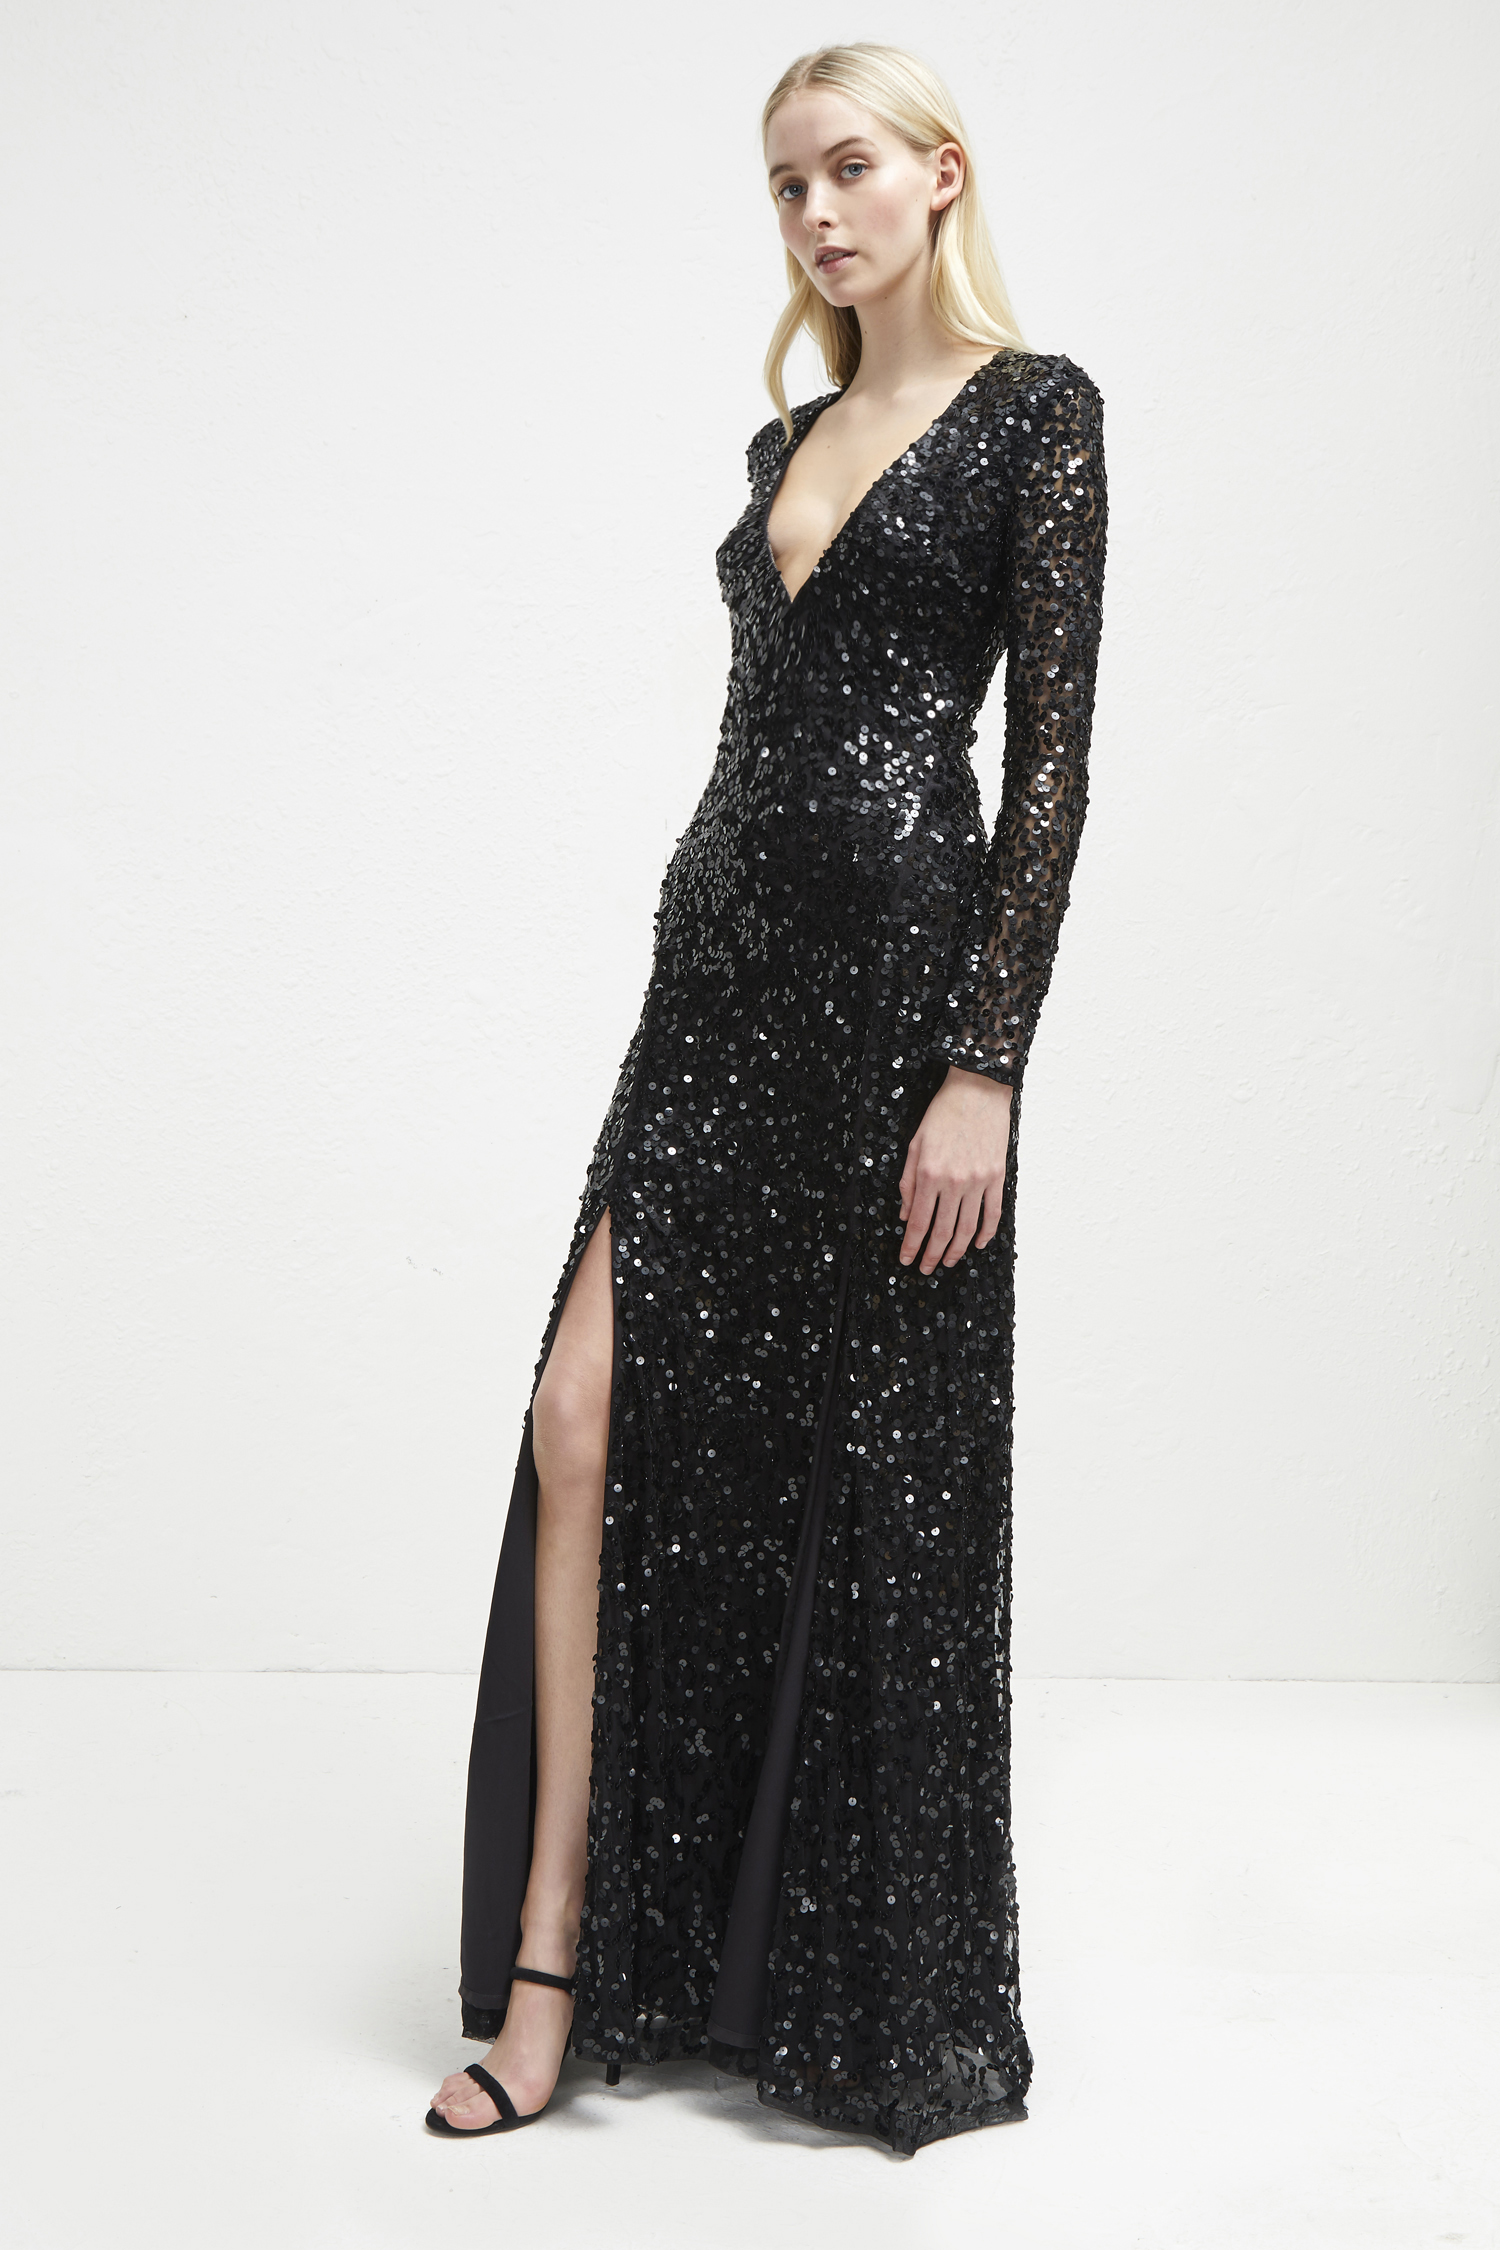 Dresses Sparkle forecast to wear in autumn in 2019